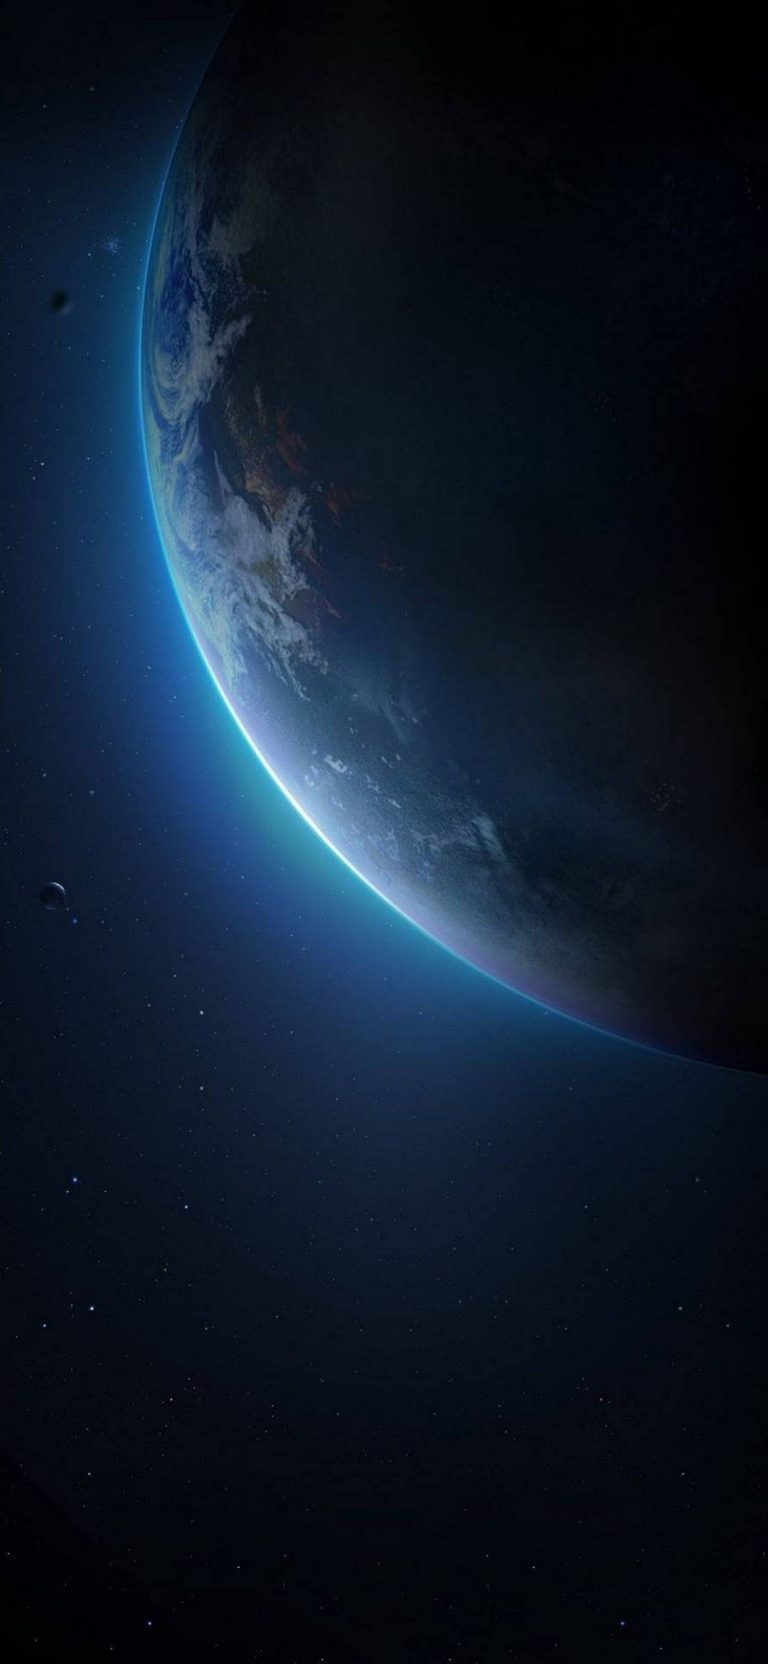 Space Phone Wallpaper 037 1080x2340 768x1664